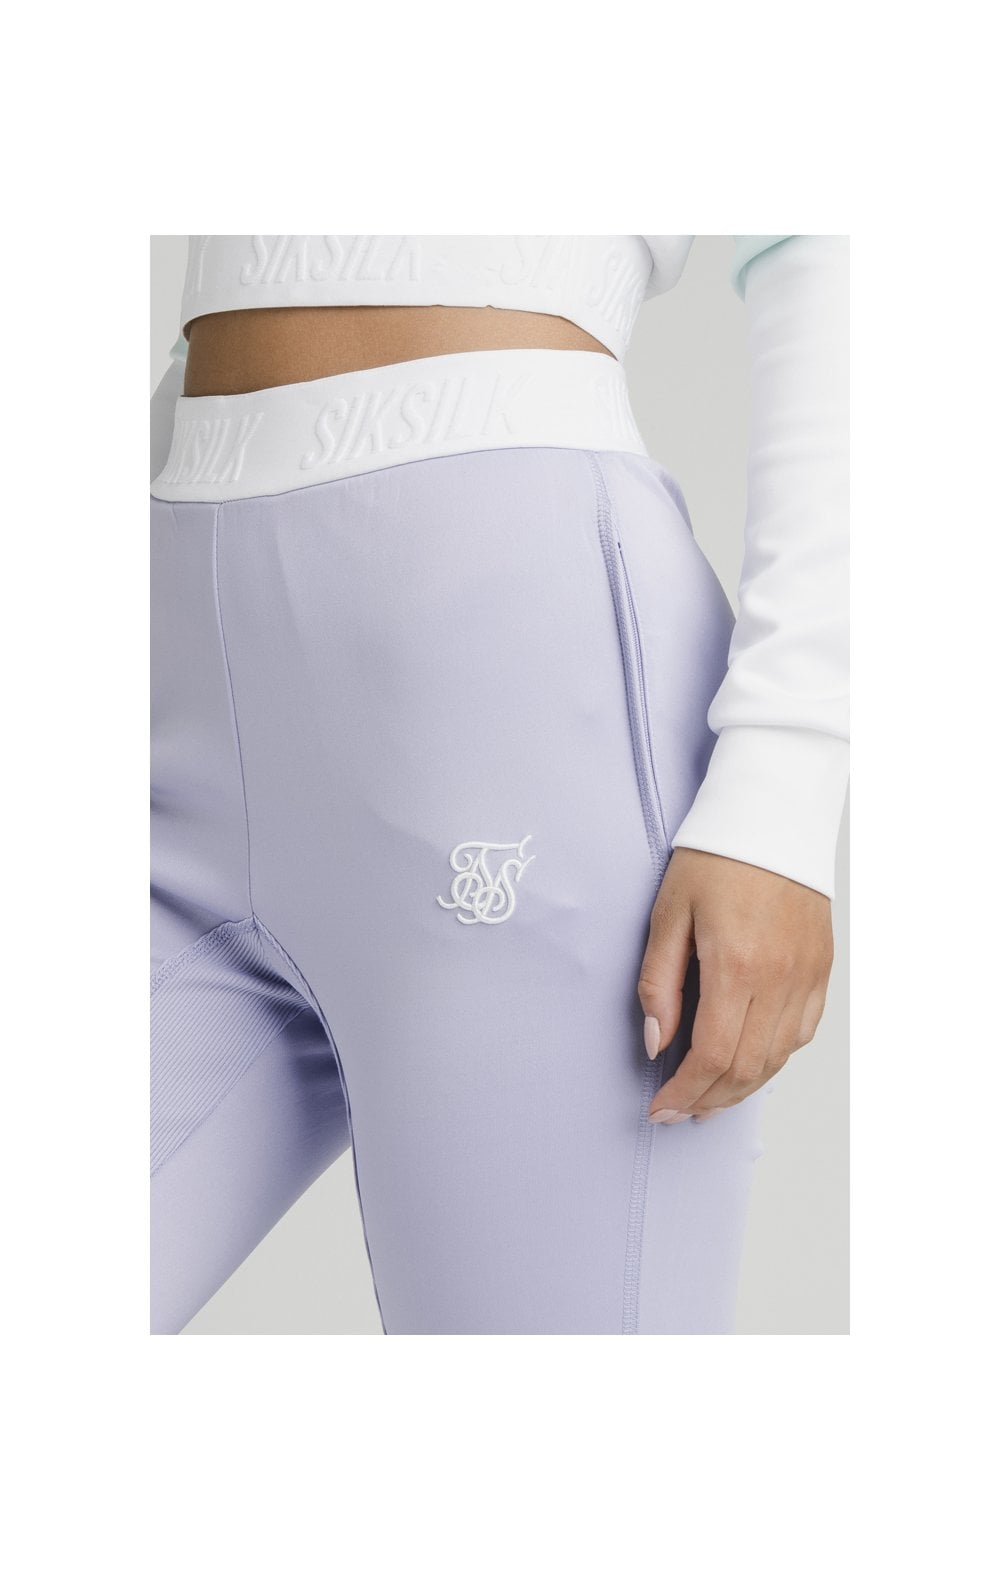 Load image into Gallery viewer, SikSilk Lilac Haze Track Pants - Lilac (2)